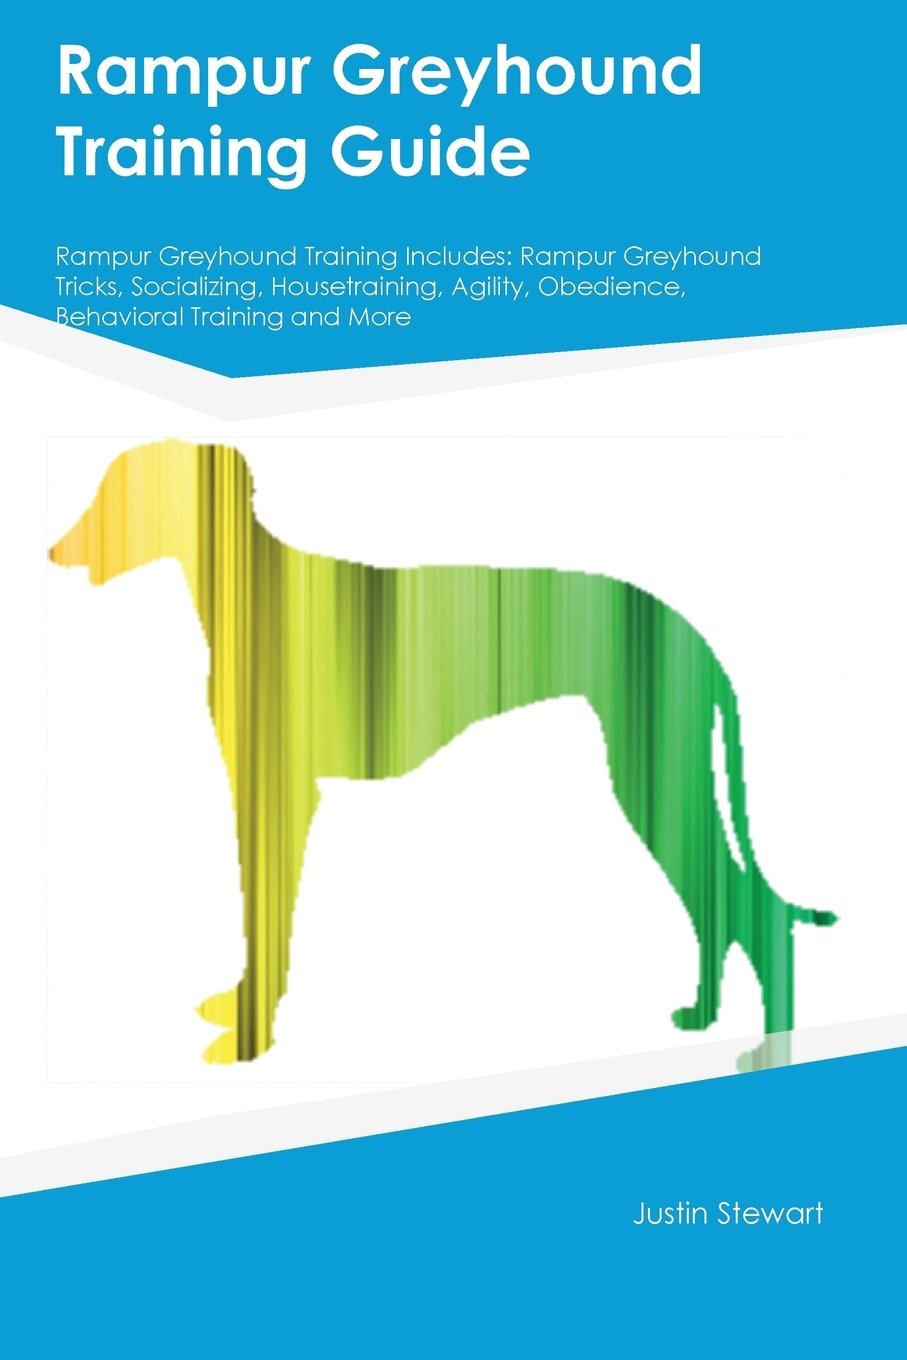 Rampur Greyhound Training Guide Rampur Greyhound Training Includes: Rampur Greyhound Tricks, Socializing, Housetraining, Agility, Obedience, Behavioral Training and More pdf